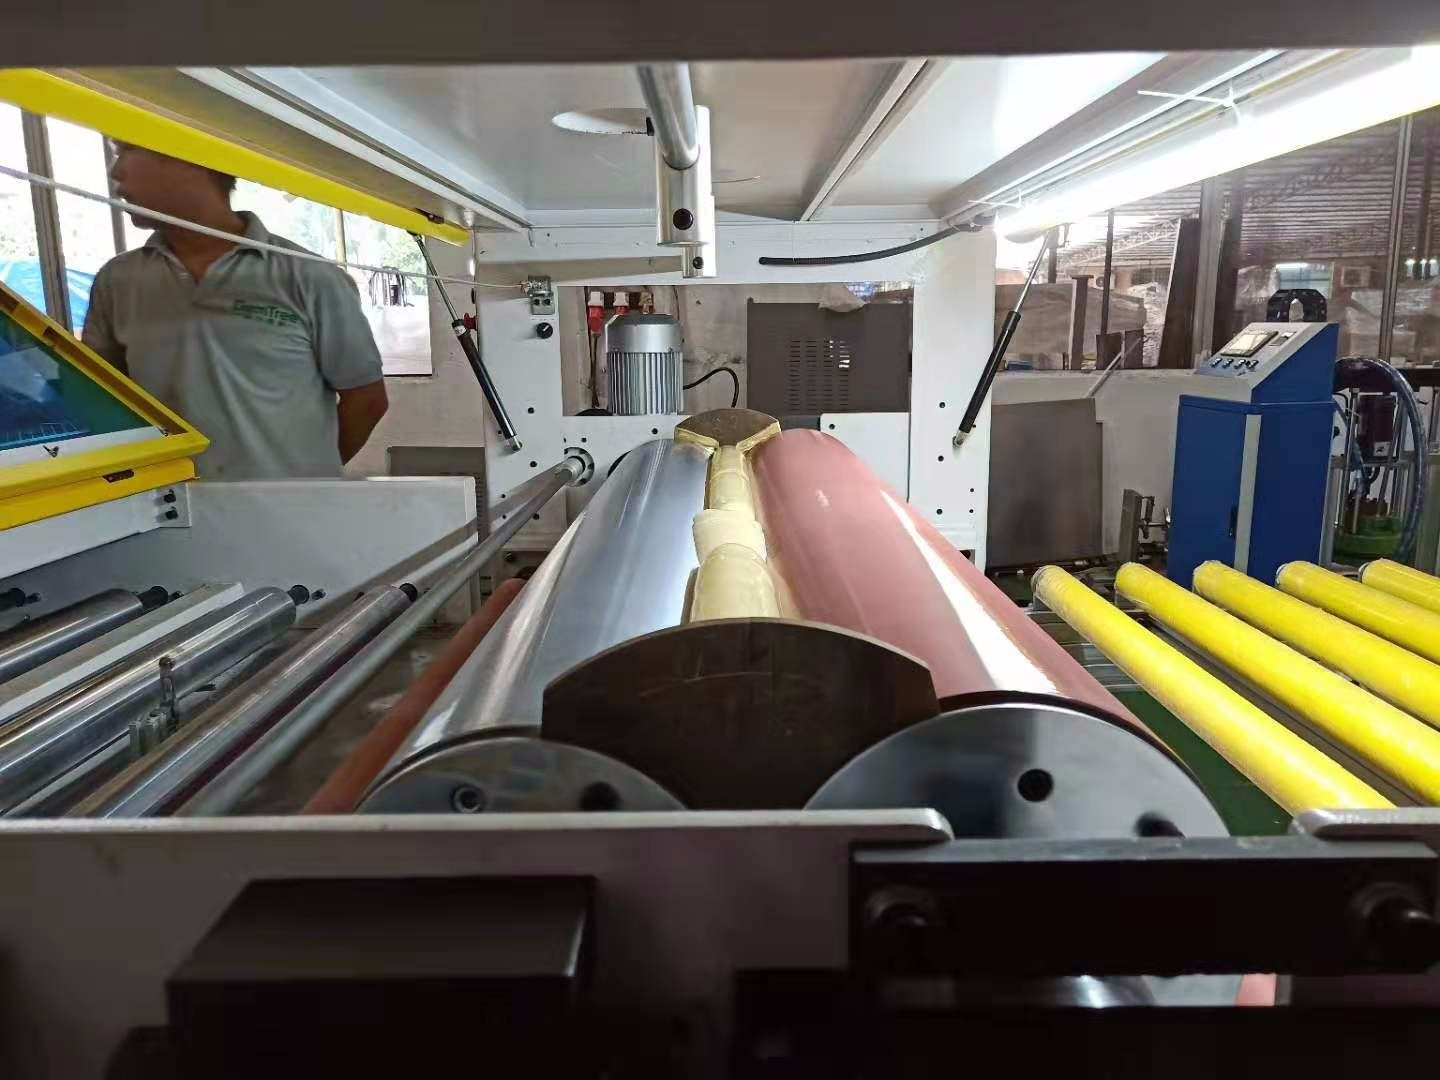 Panel Lamination Line Manufacturers, Panel Lamination Line Factory, Supply Panel Lamination Line